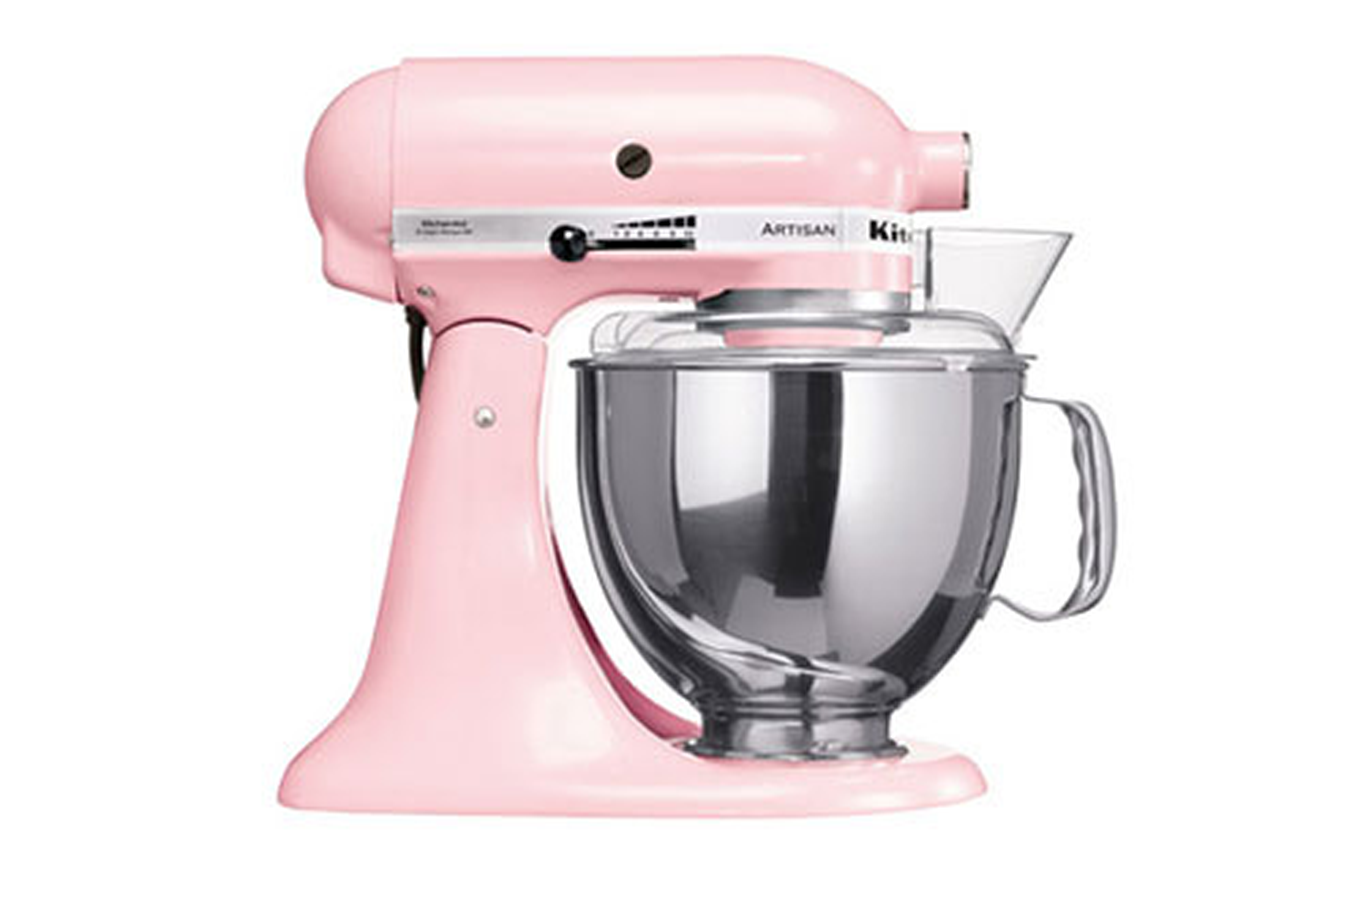 Robot patissier kitchenaid 5ksm150 psepk rose 5 ksm 150 - Robot de cuisine kitchenaid ...